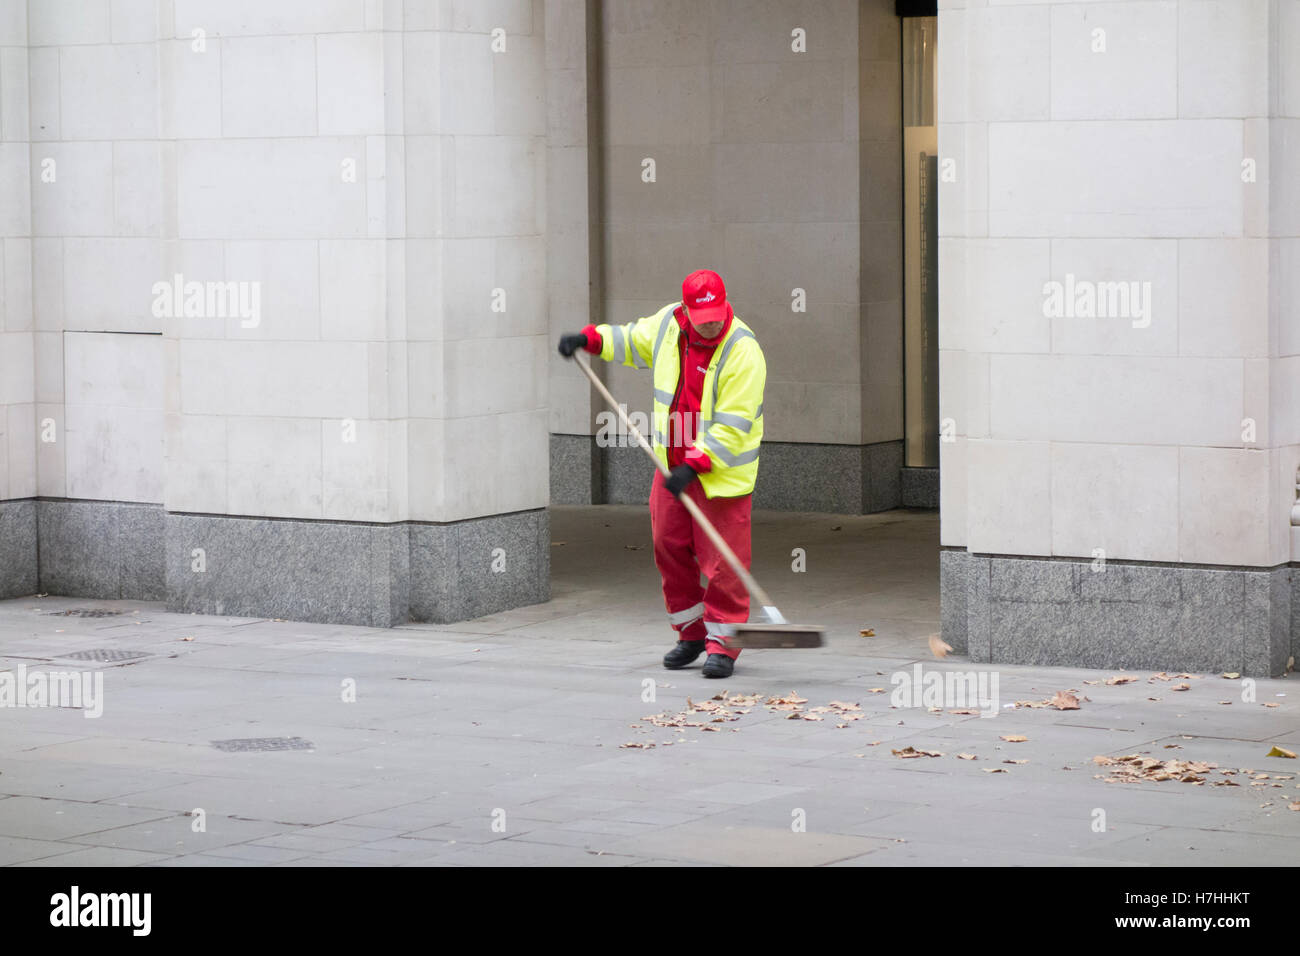 Workman sweeping leaves in St Paul's Churchyard, City of London, UK - Stock Image